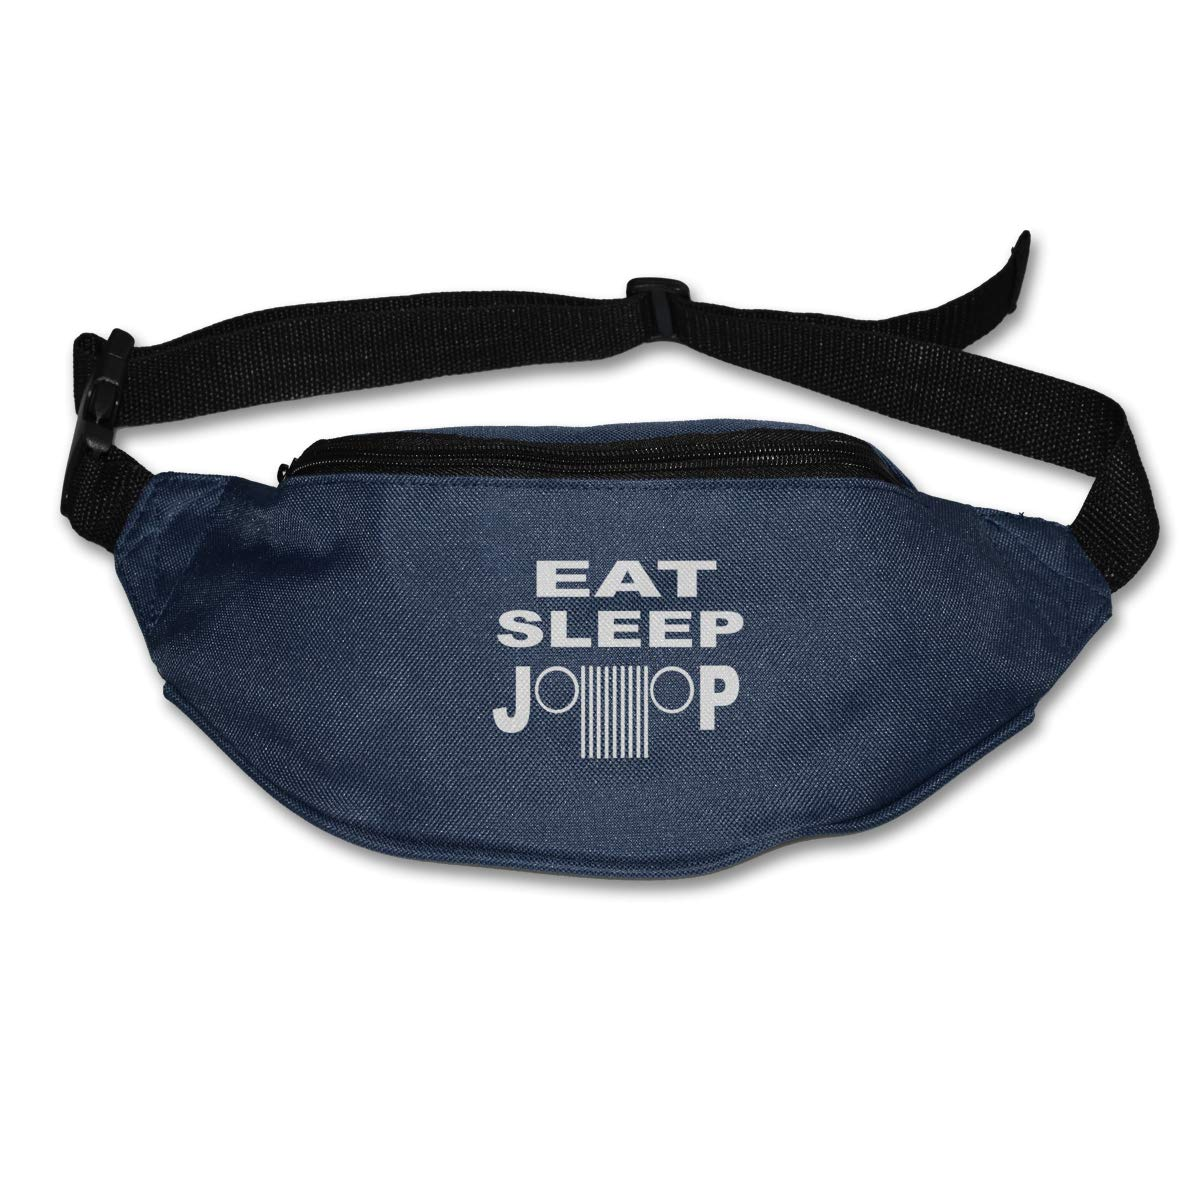 Eat Sleep Jeep Sport Waist Bag Fanny Pack Adjustable For Travel